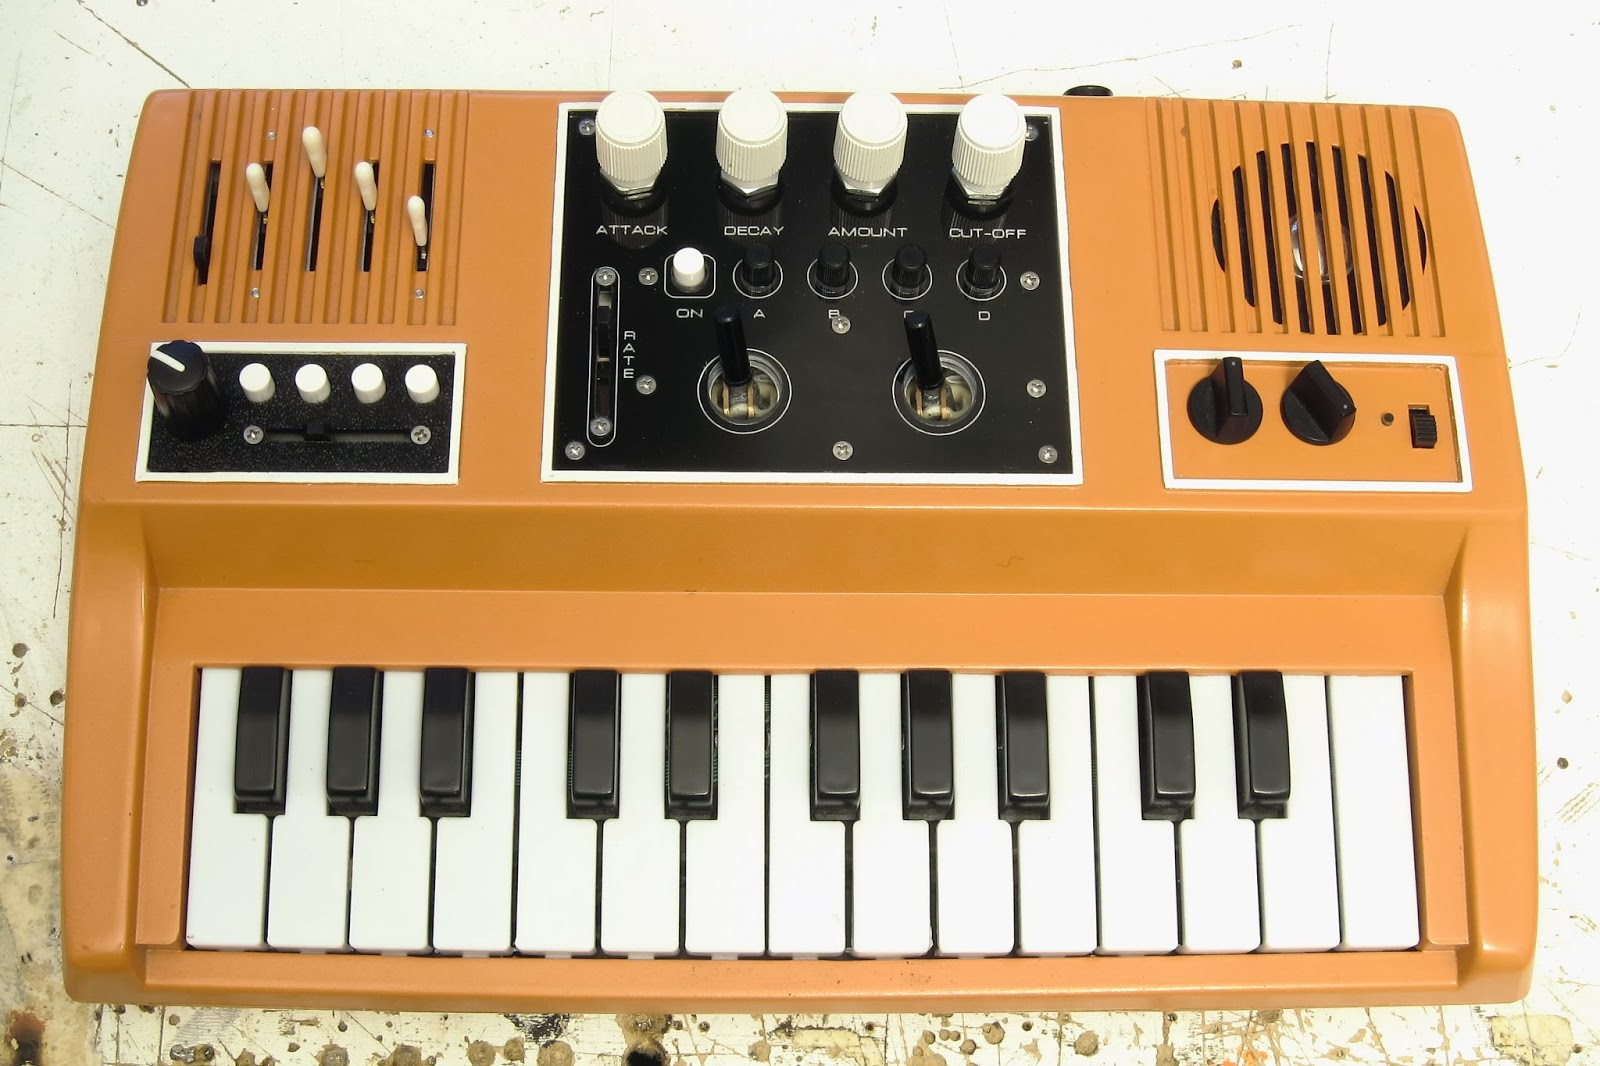 Noystoise2018 Circuit Bent Keyboard Revised Circuitbending Circuitbent Noise Toys By Cementimental